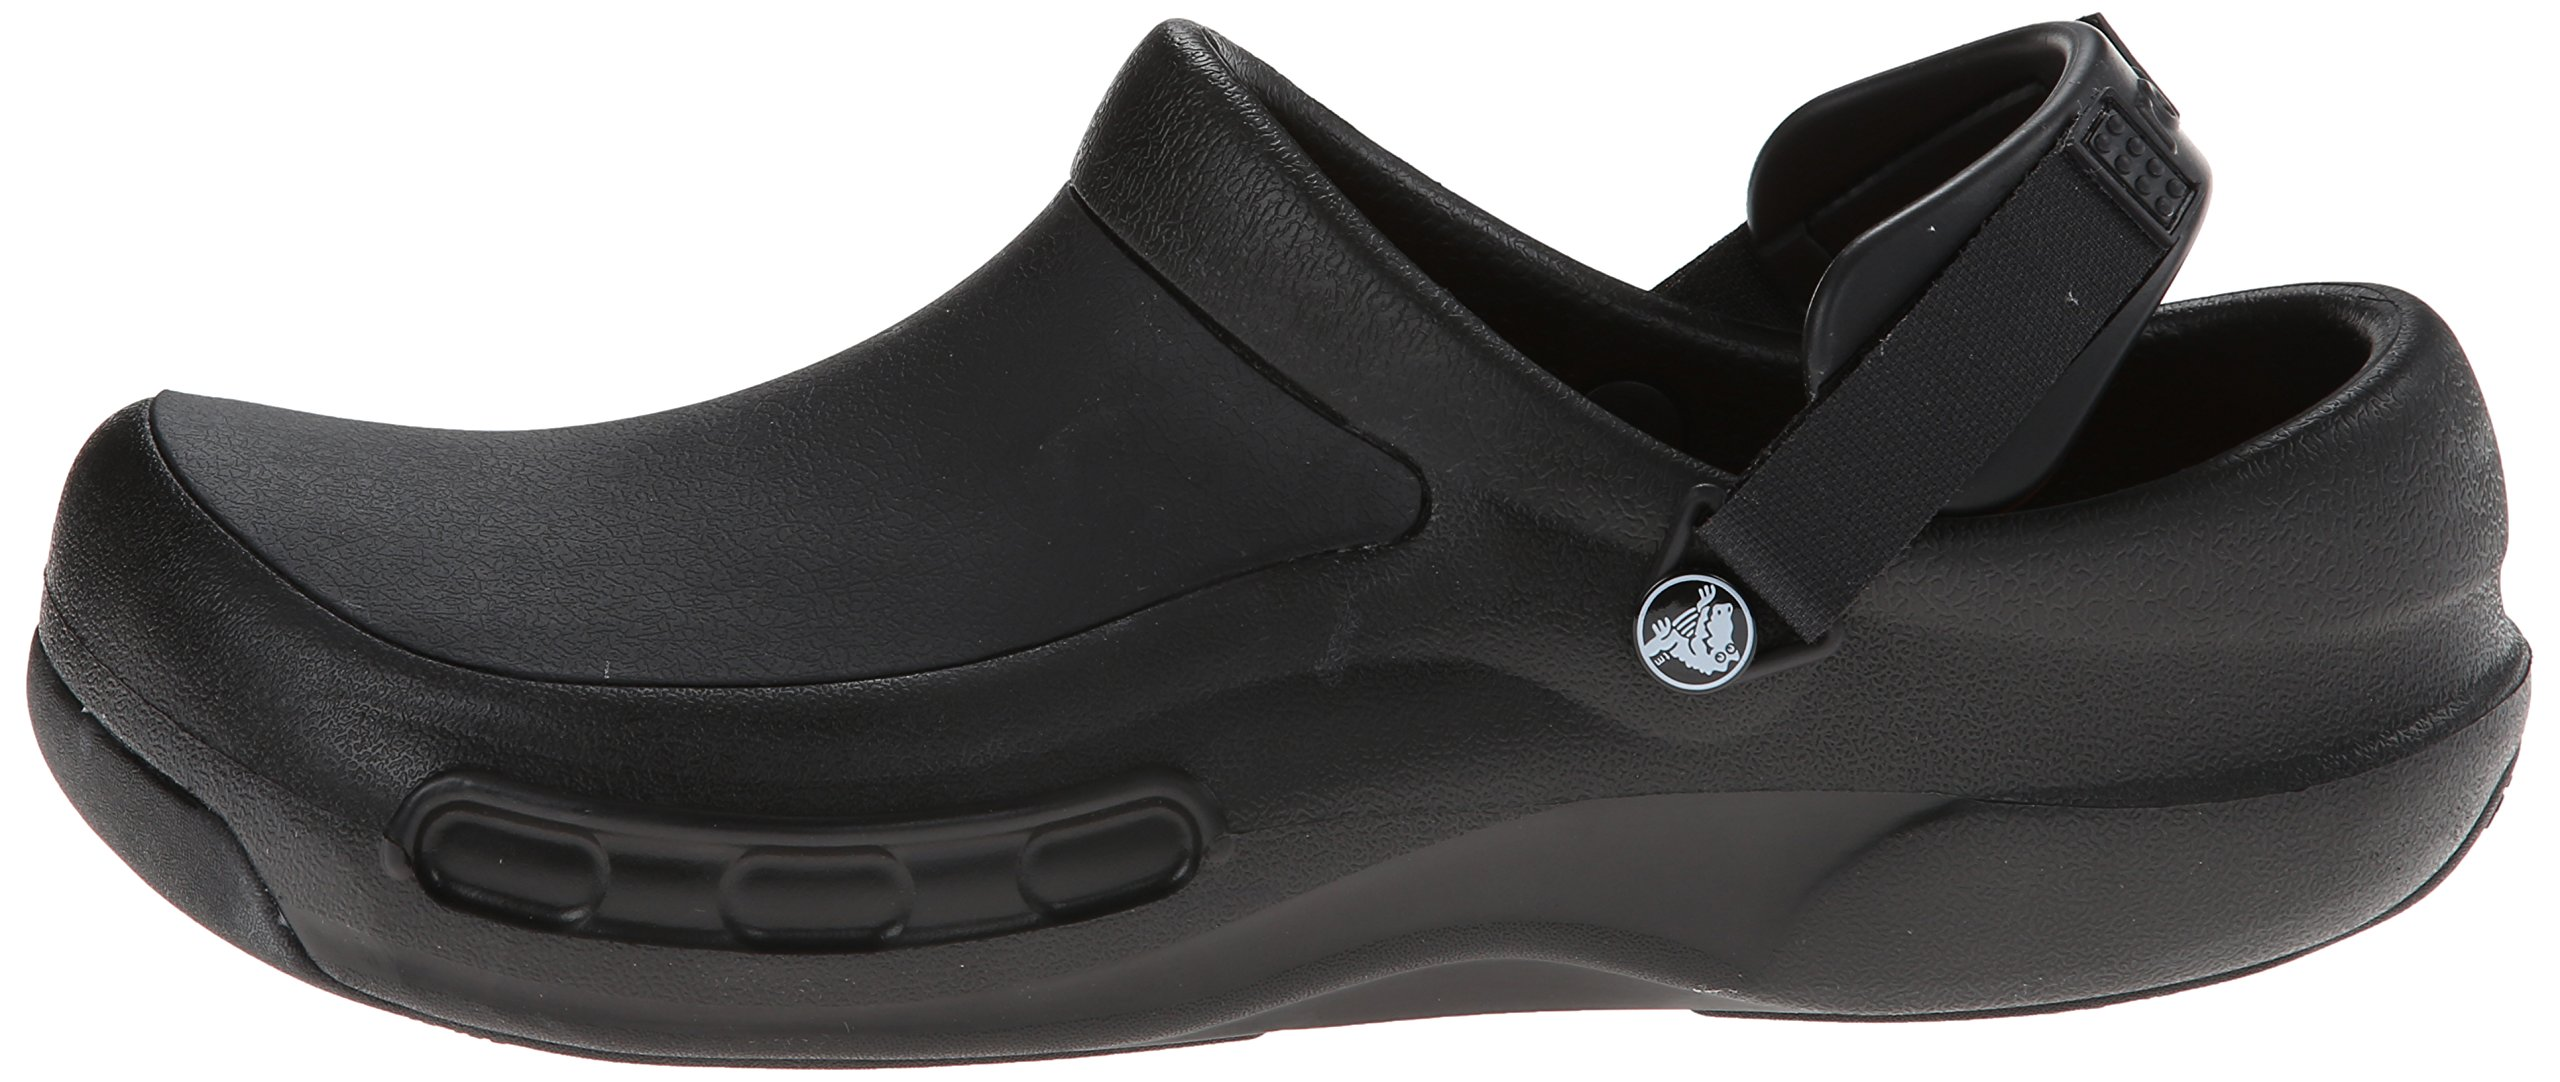 Crocs Men's 15010 Bistro Pro Clog,Black,11 M US by Crocs (Image #5)